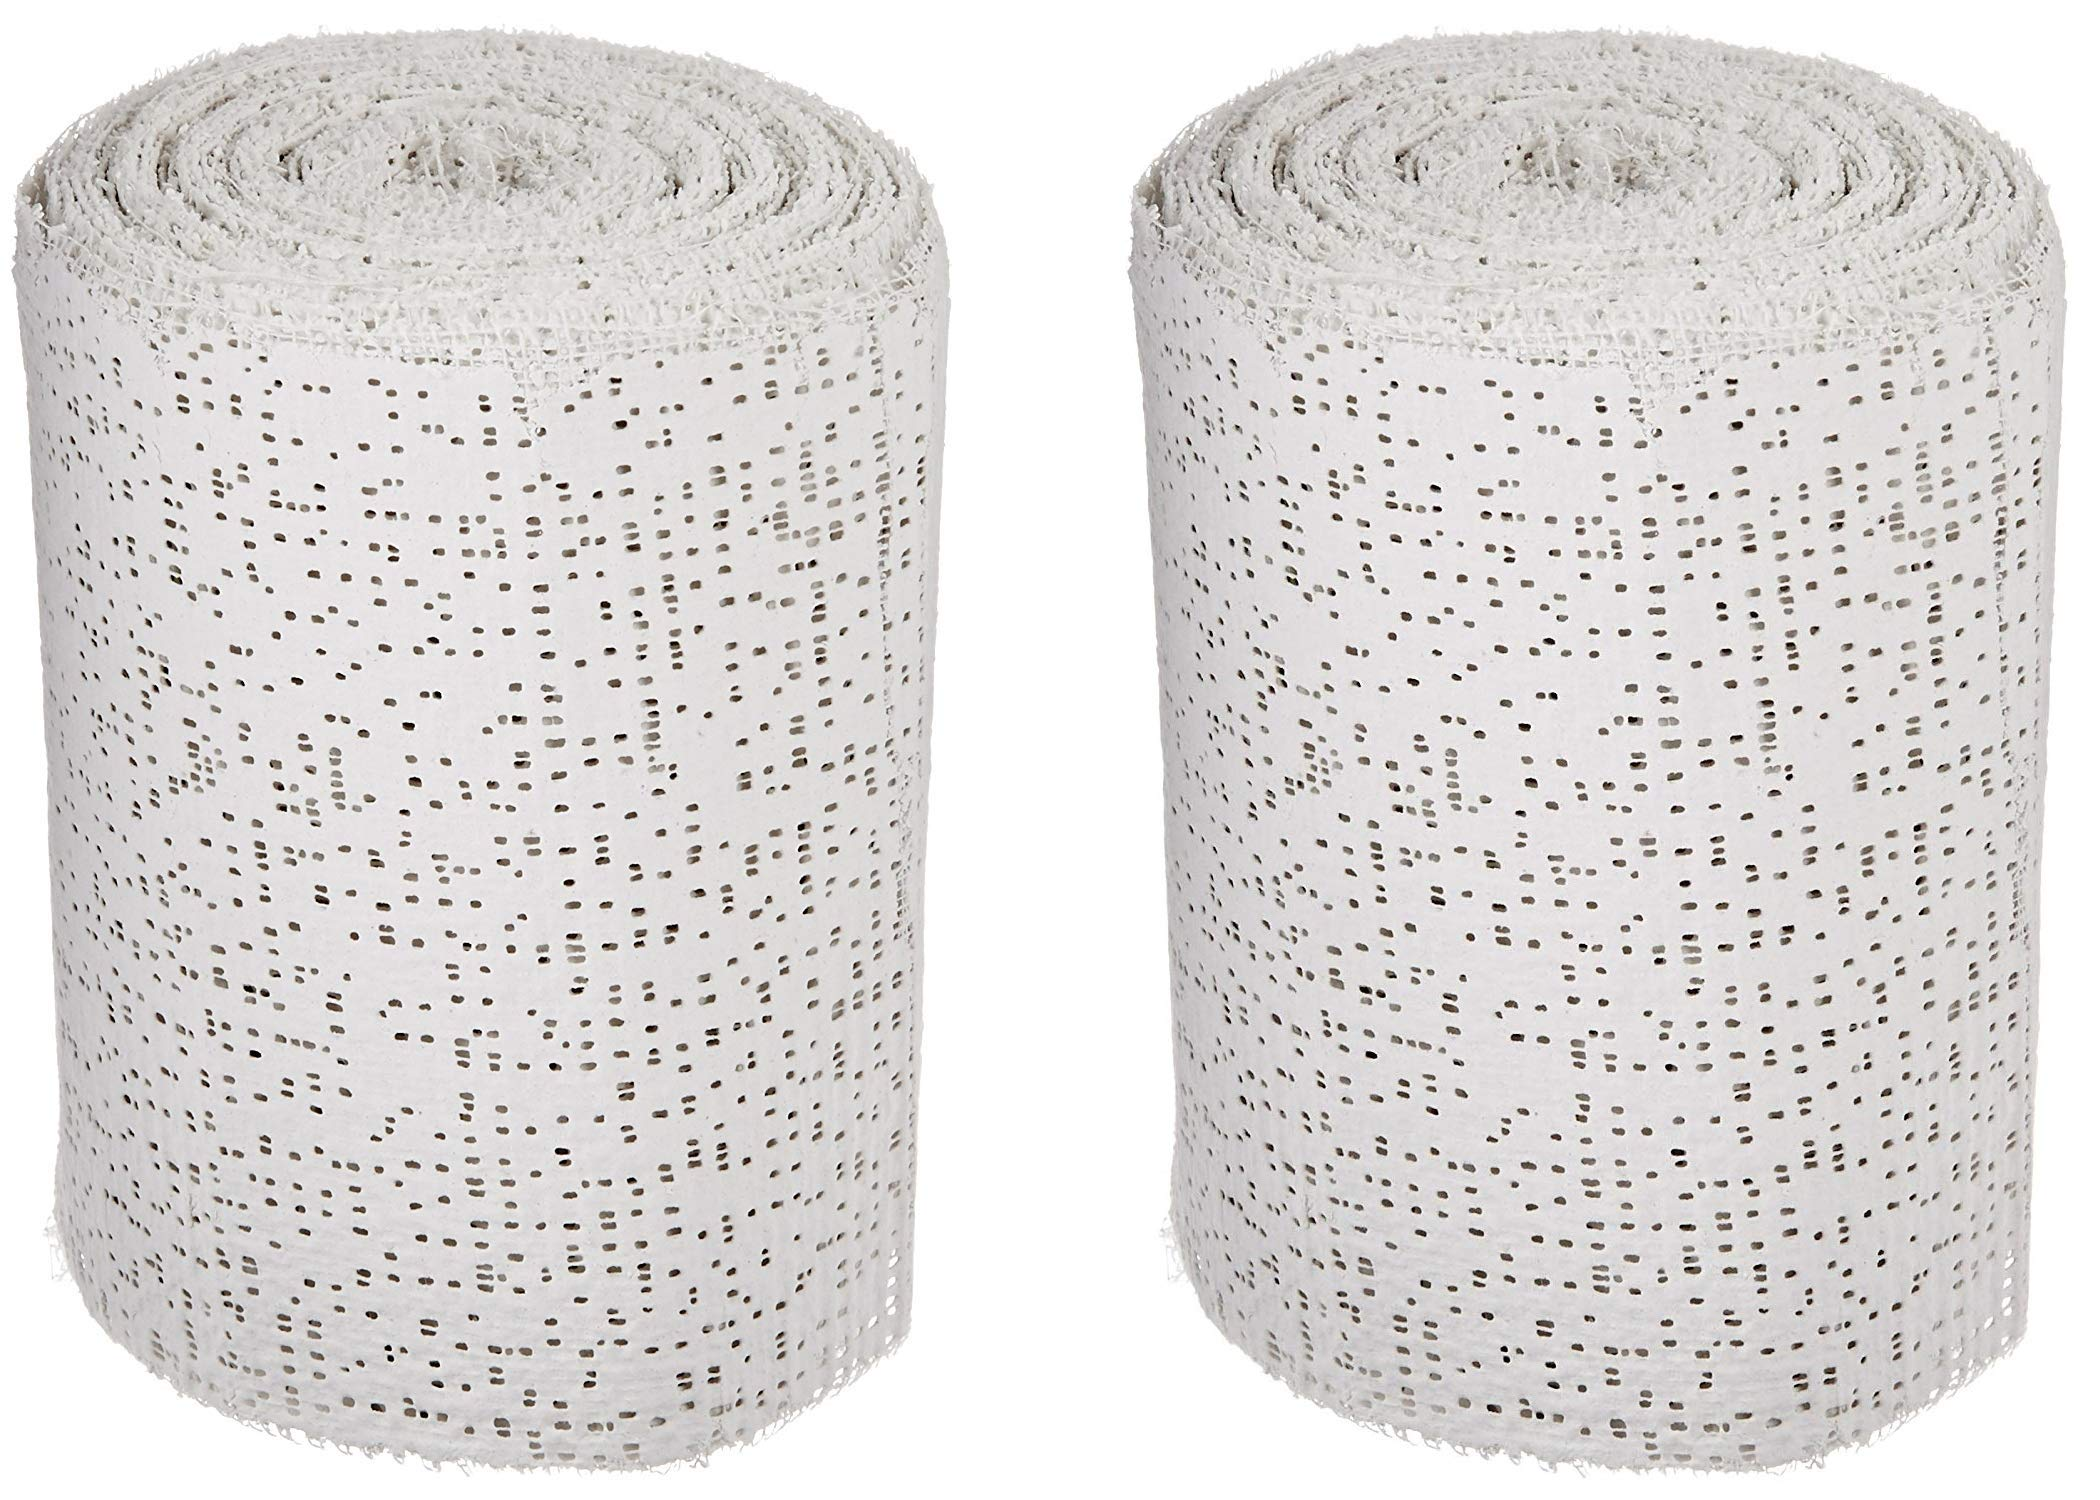 Sax Professional Plaster Wrap Roll, 4 Inch x 180 Feet, White, 20 Rolls (Pack of 2)